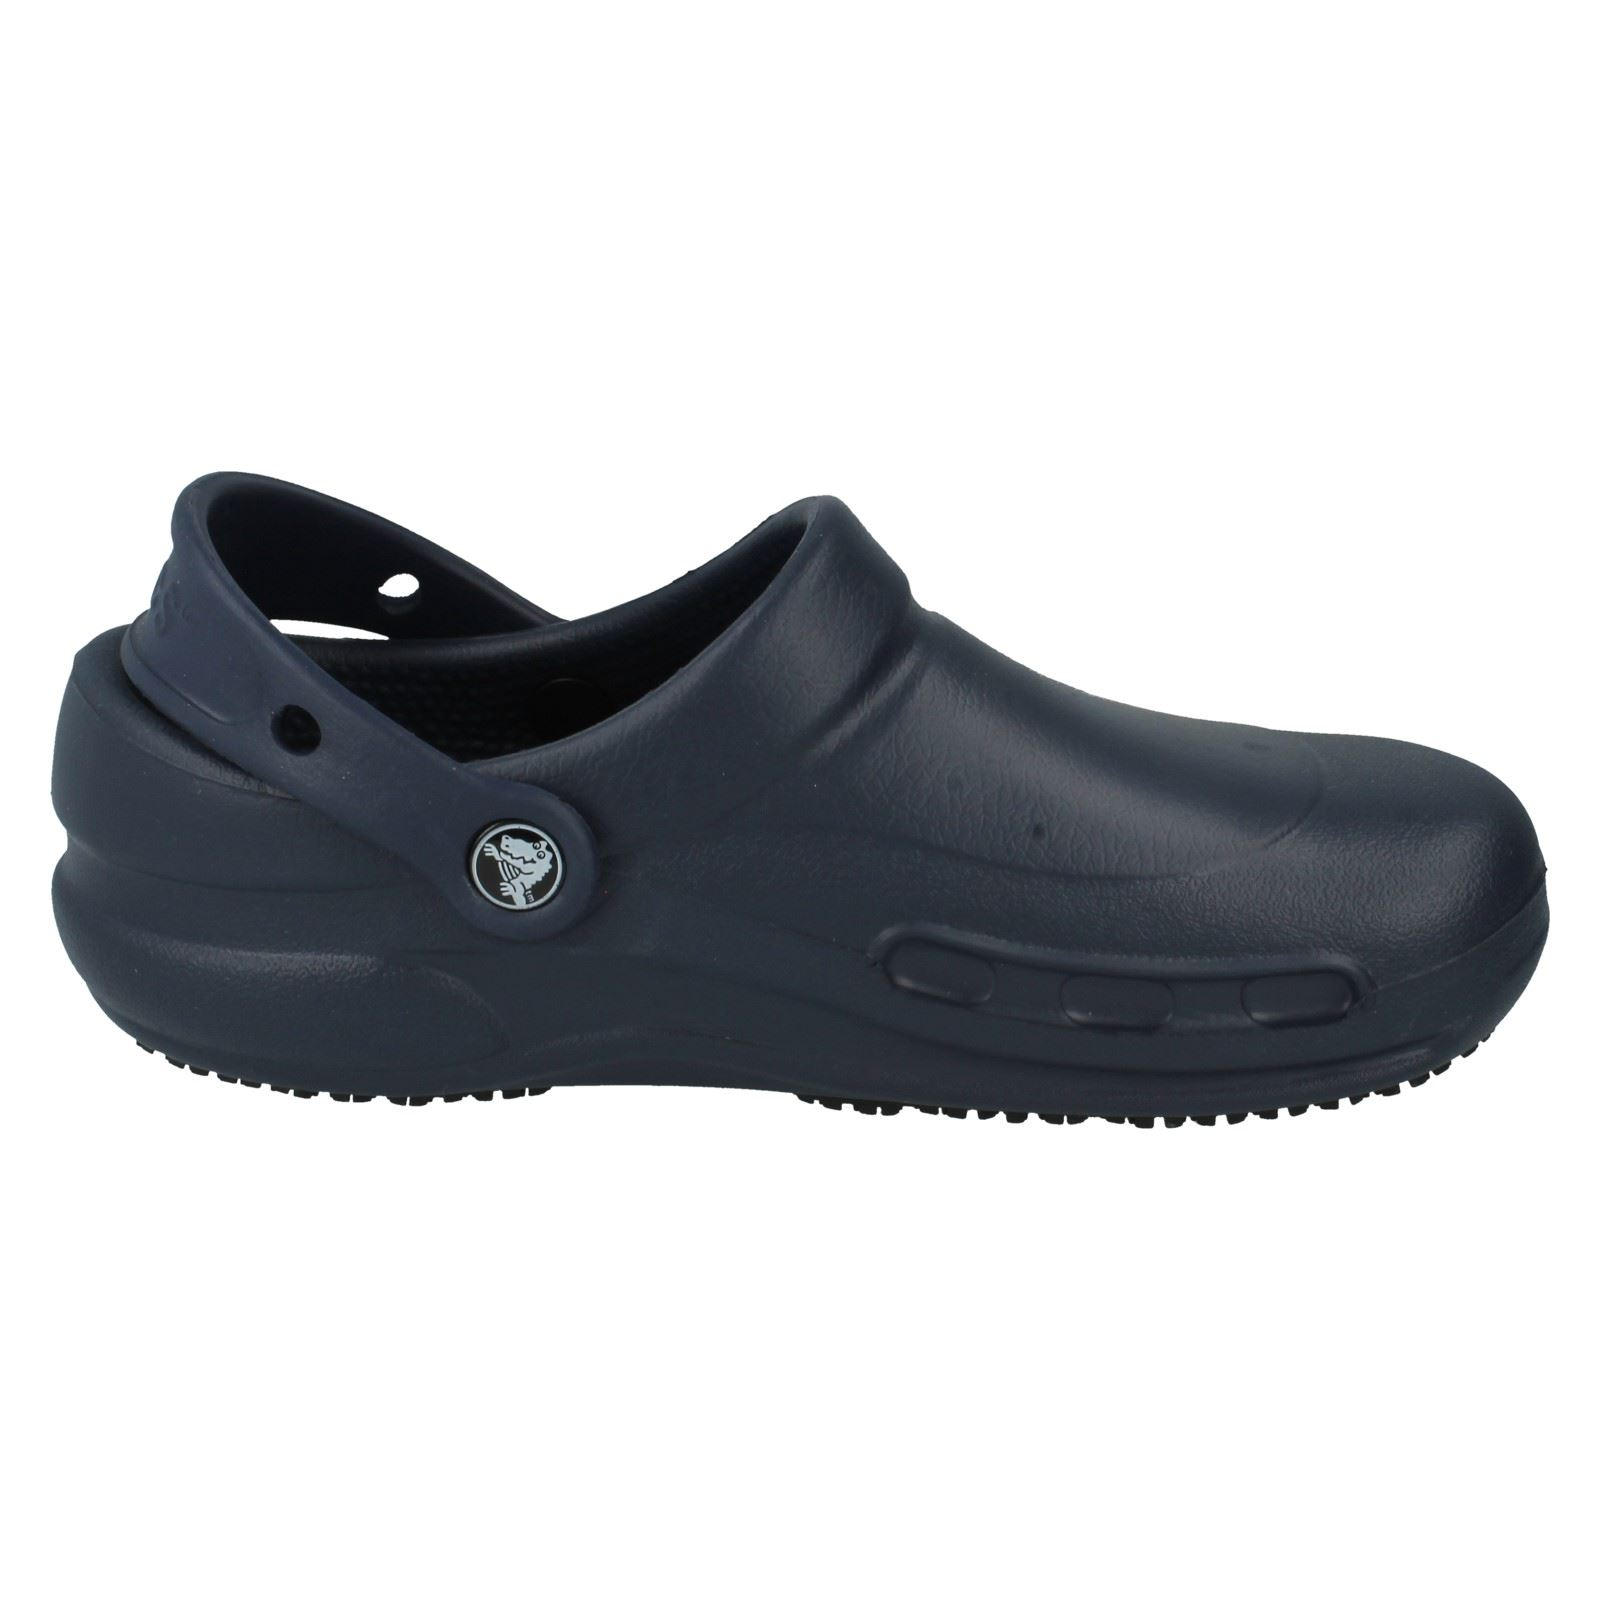 Adults Crocs Bistro Medical, Kitchen, Chef Work Clogs